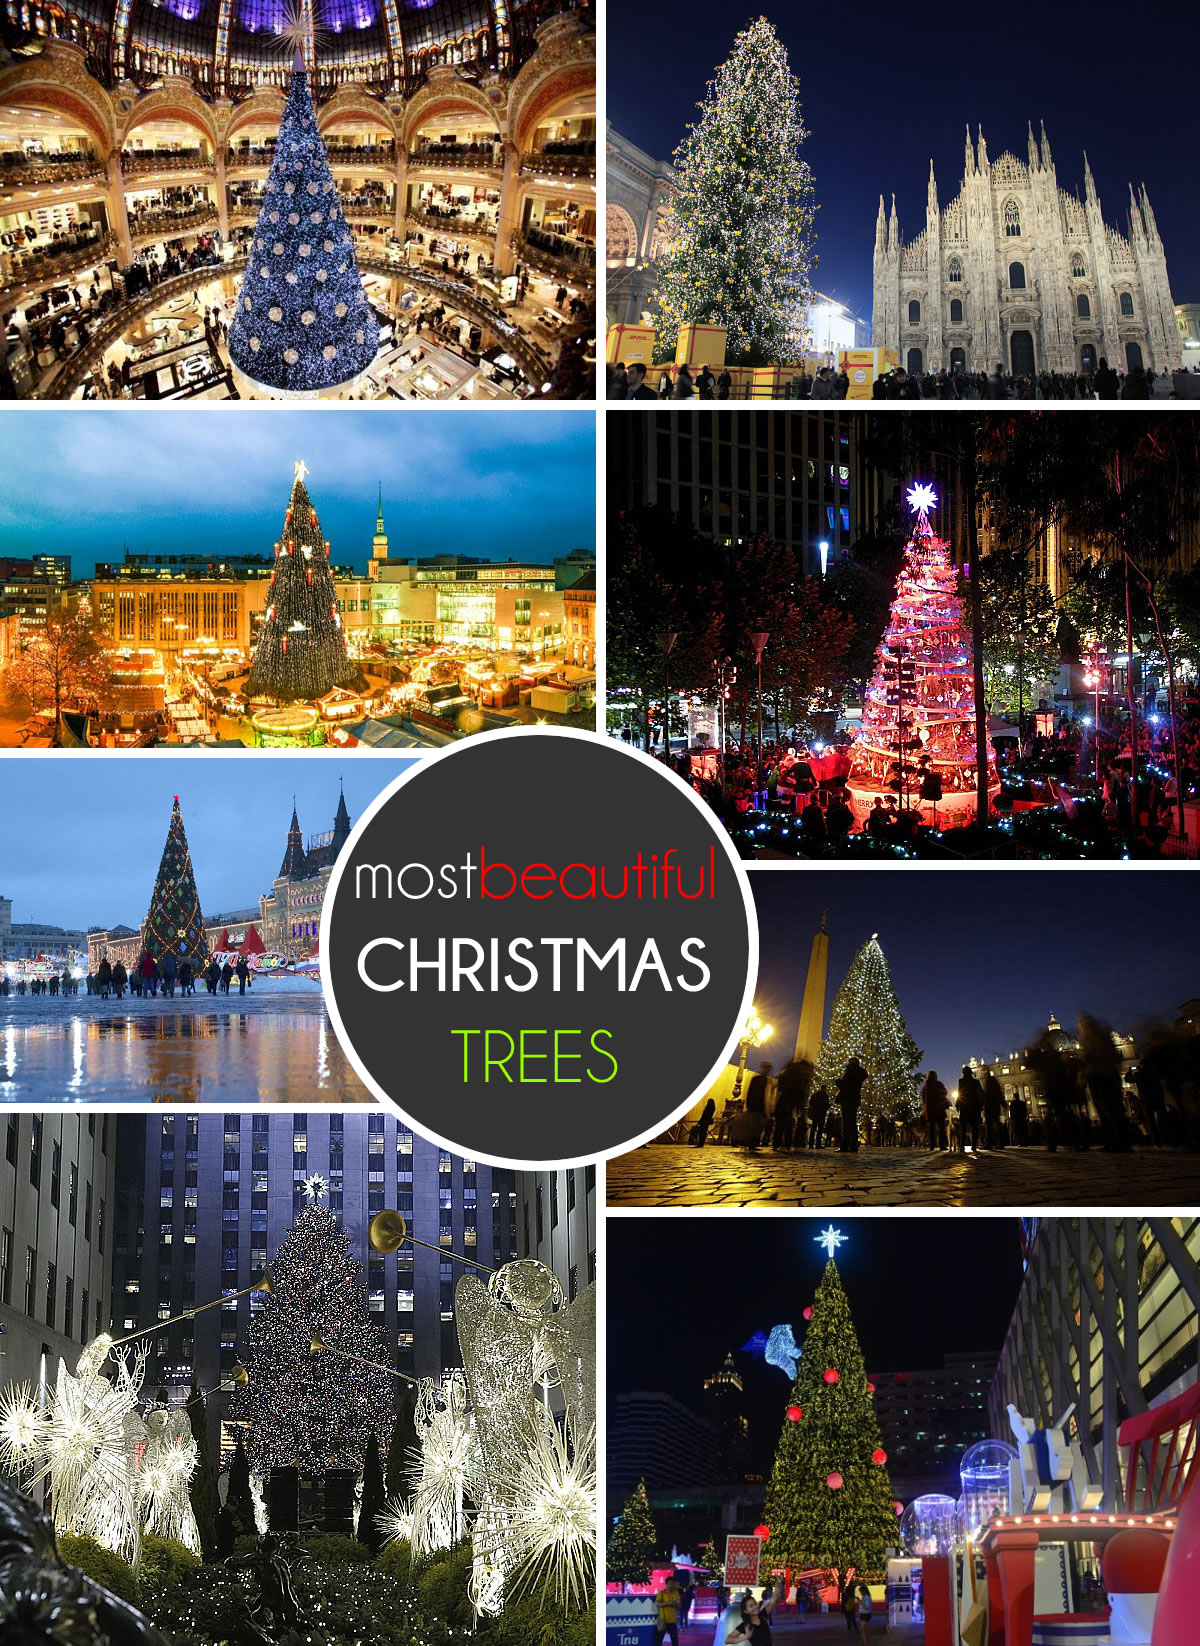 Most Beautiful Christmas Photos Of Bei En Gedanken The 20 Most Beautiful Christmas Trees In